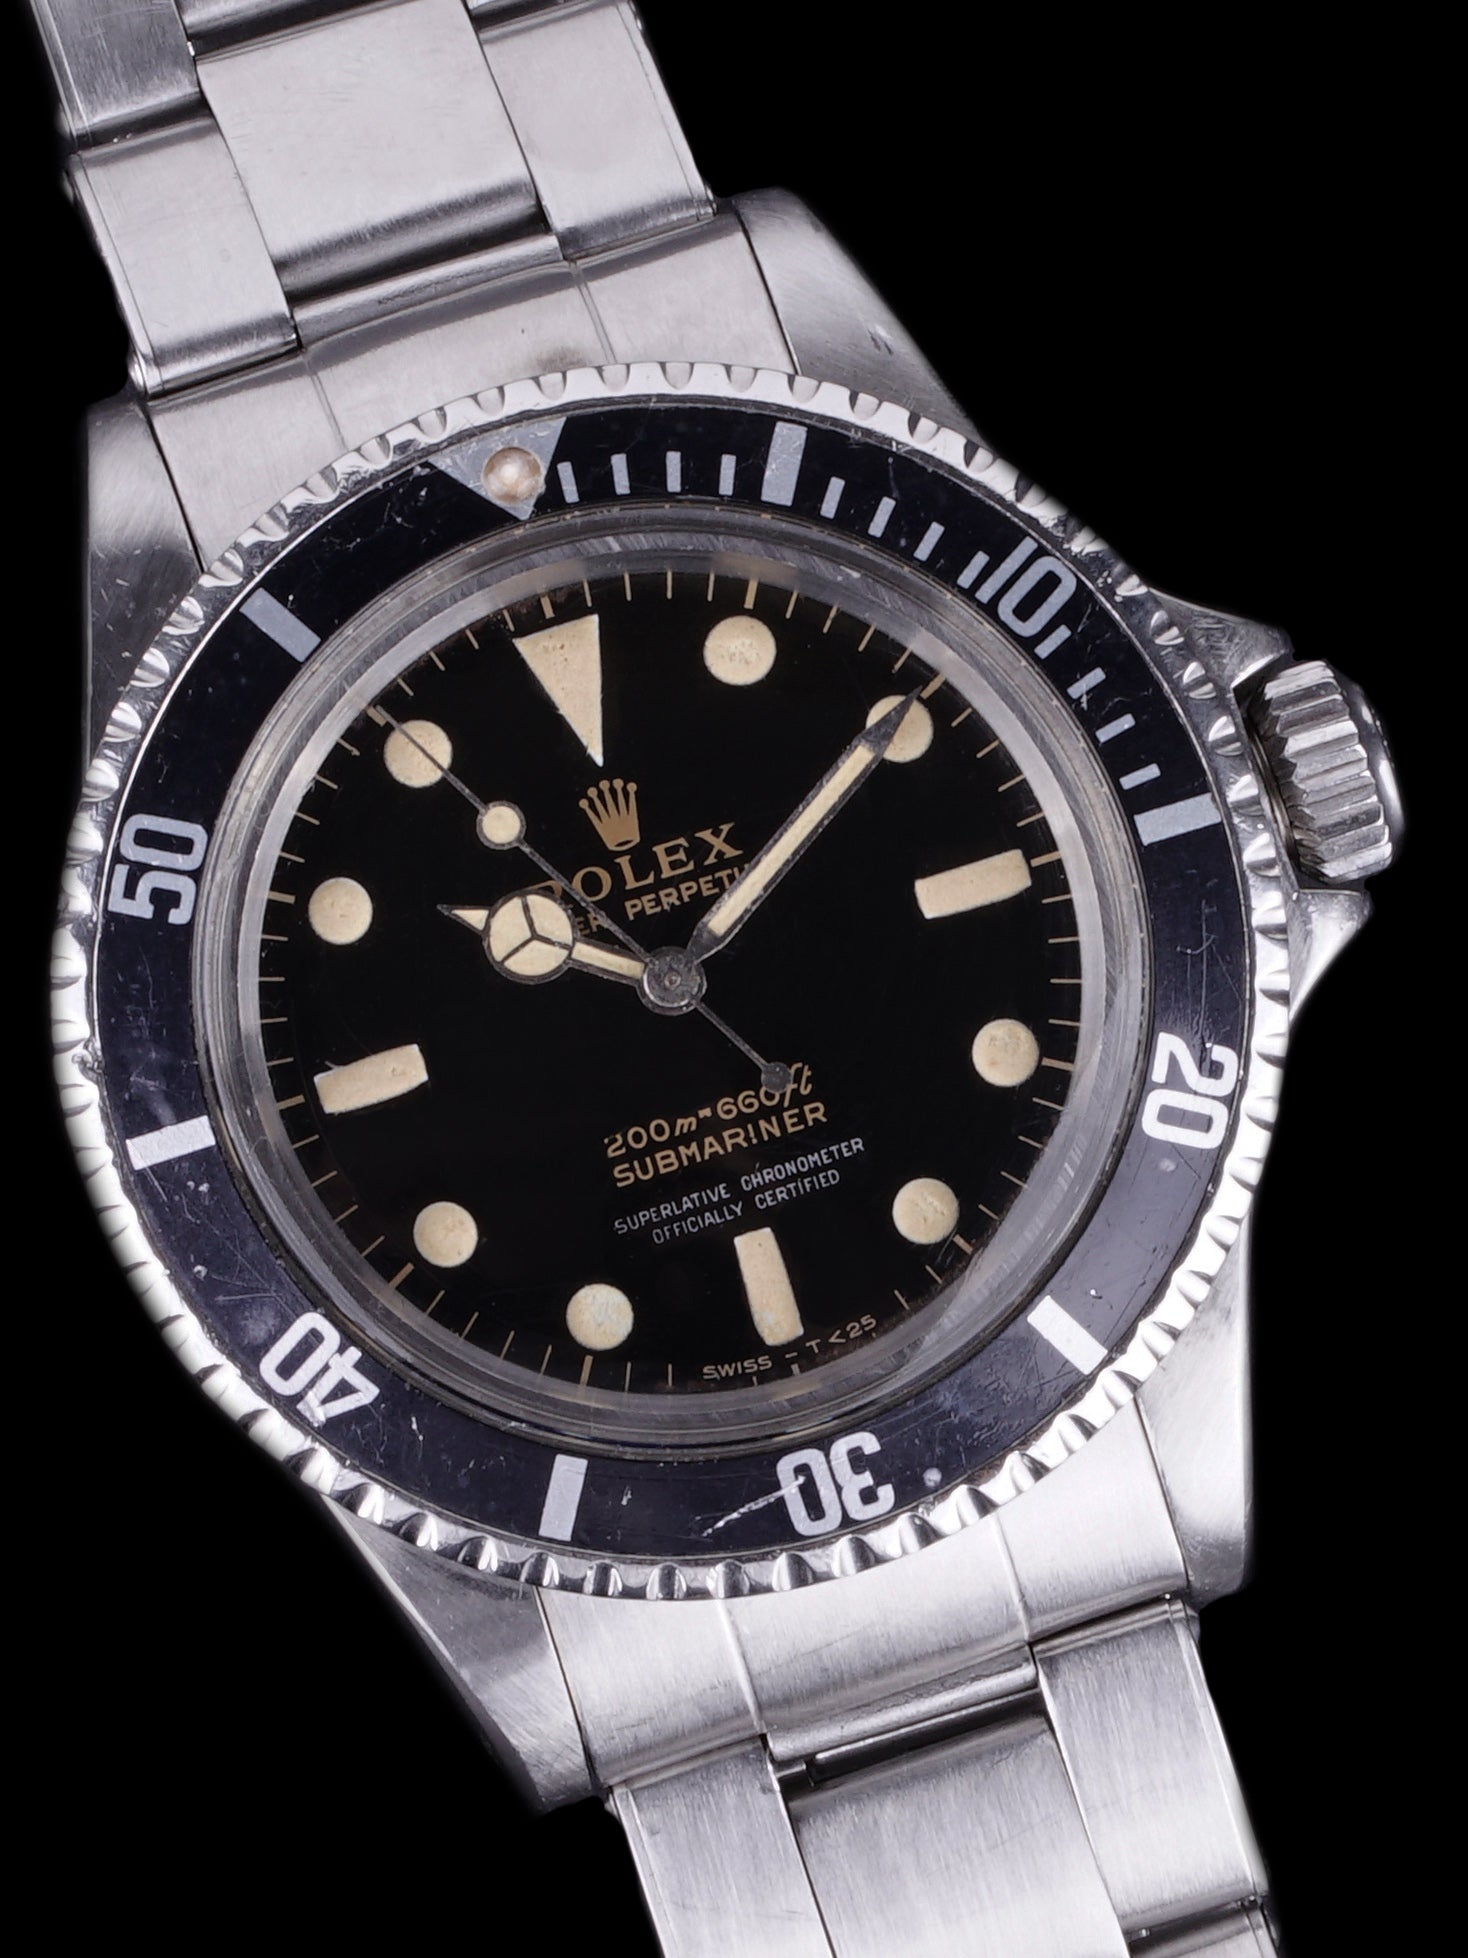 1966 Rolex Submariner (Ref. 5512) Two Color Gilt Dial